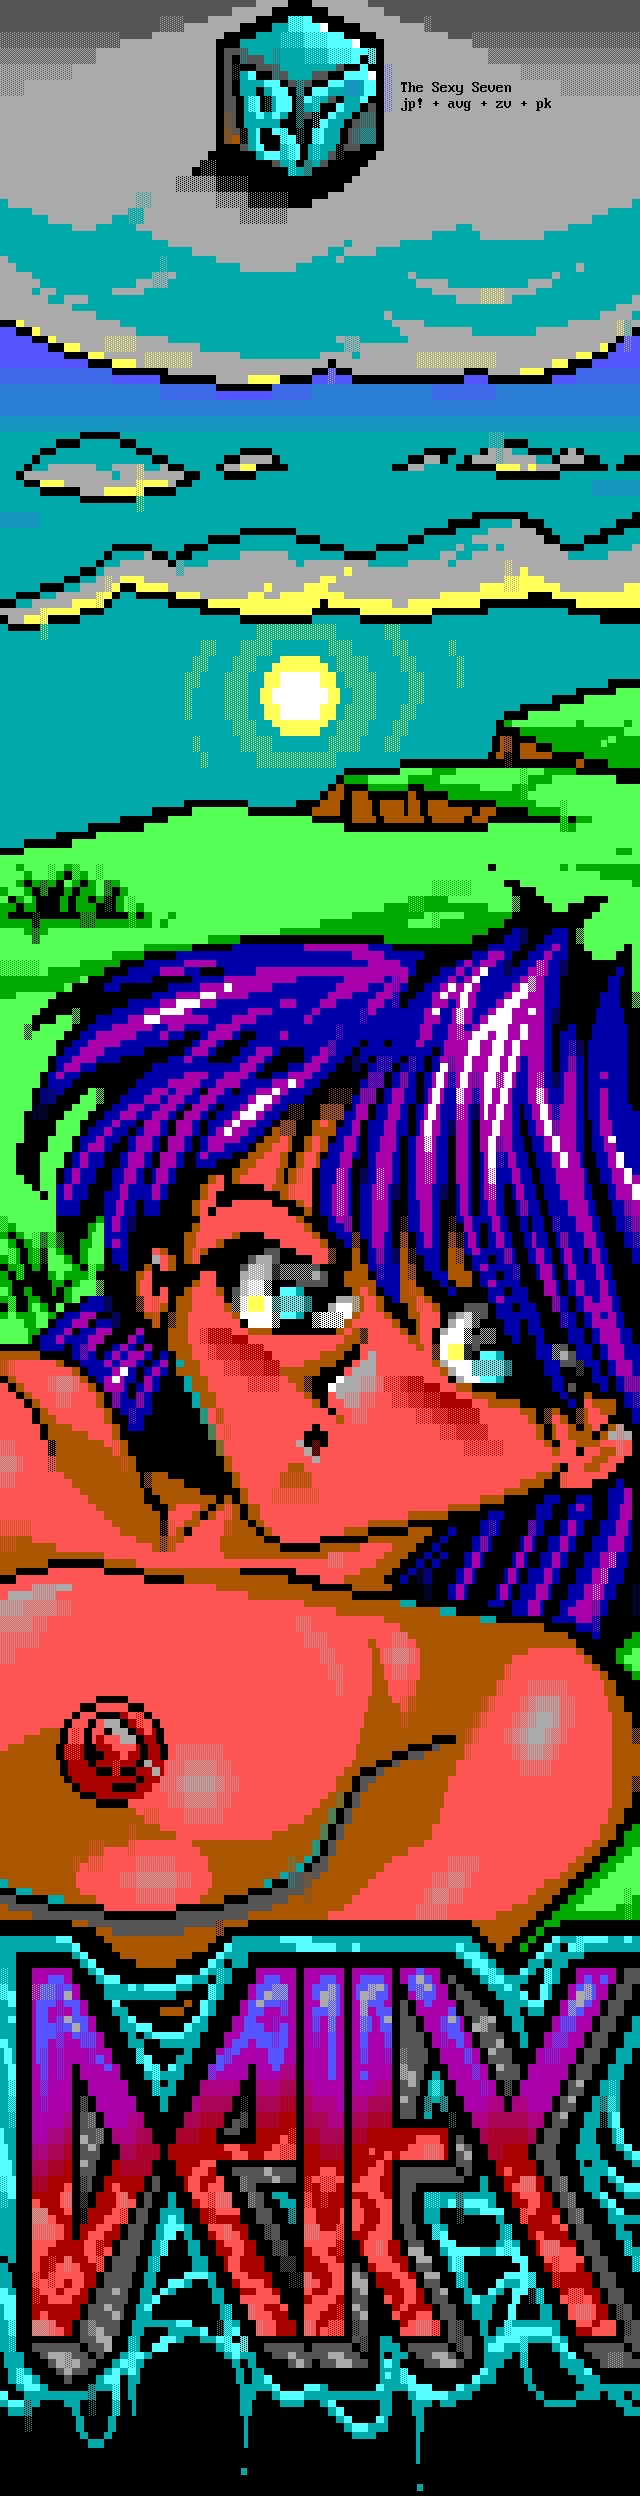 we-deity.ans, anime, manga, hentai, hair, purple, blue, gray, cyan, yellow, sun, naked, eye, eyes, logo, font, red, deity, joint, ansi joint, woman, girl, chick, japan, japanese, ivan, avg, avenging, avenging angel, zerovision, zv, enzo, luciano, luciano ayres, pook, jack phlash, jp